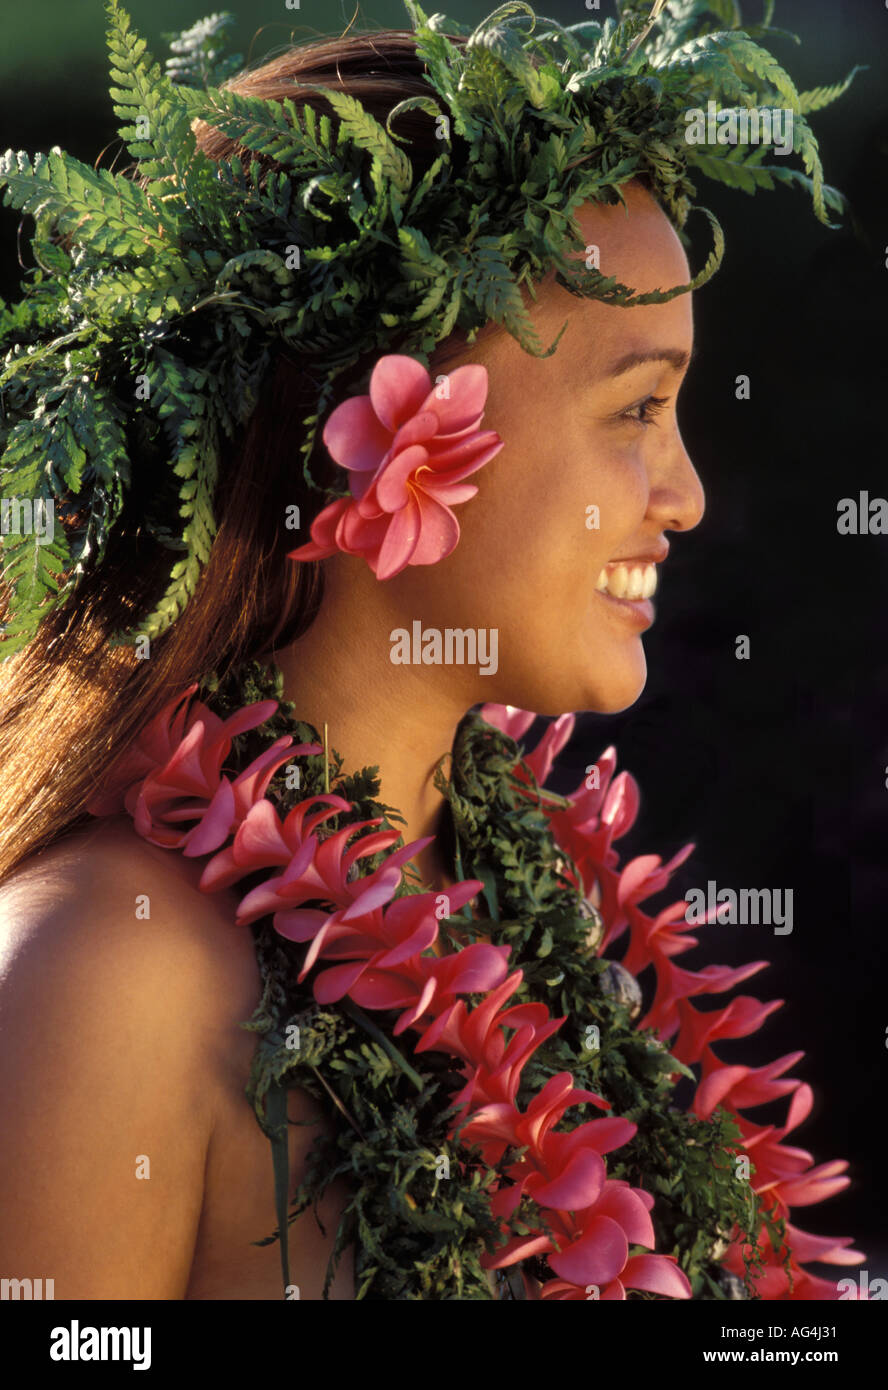 Flower lei maui stock photos flower lei maui stock images alamy profile of a real hawaiian girl with ferns and flowers stock image izmirmasajfo